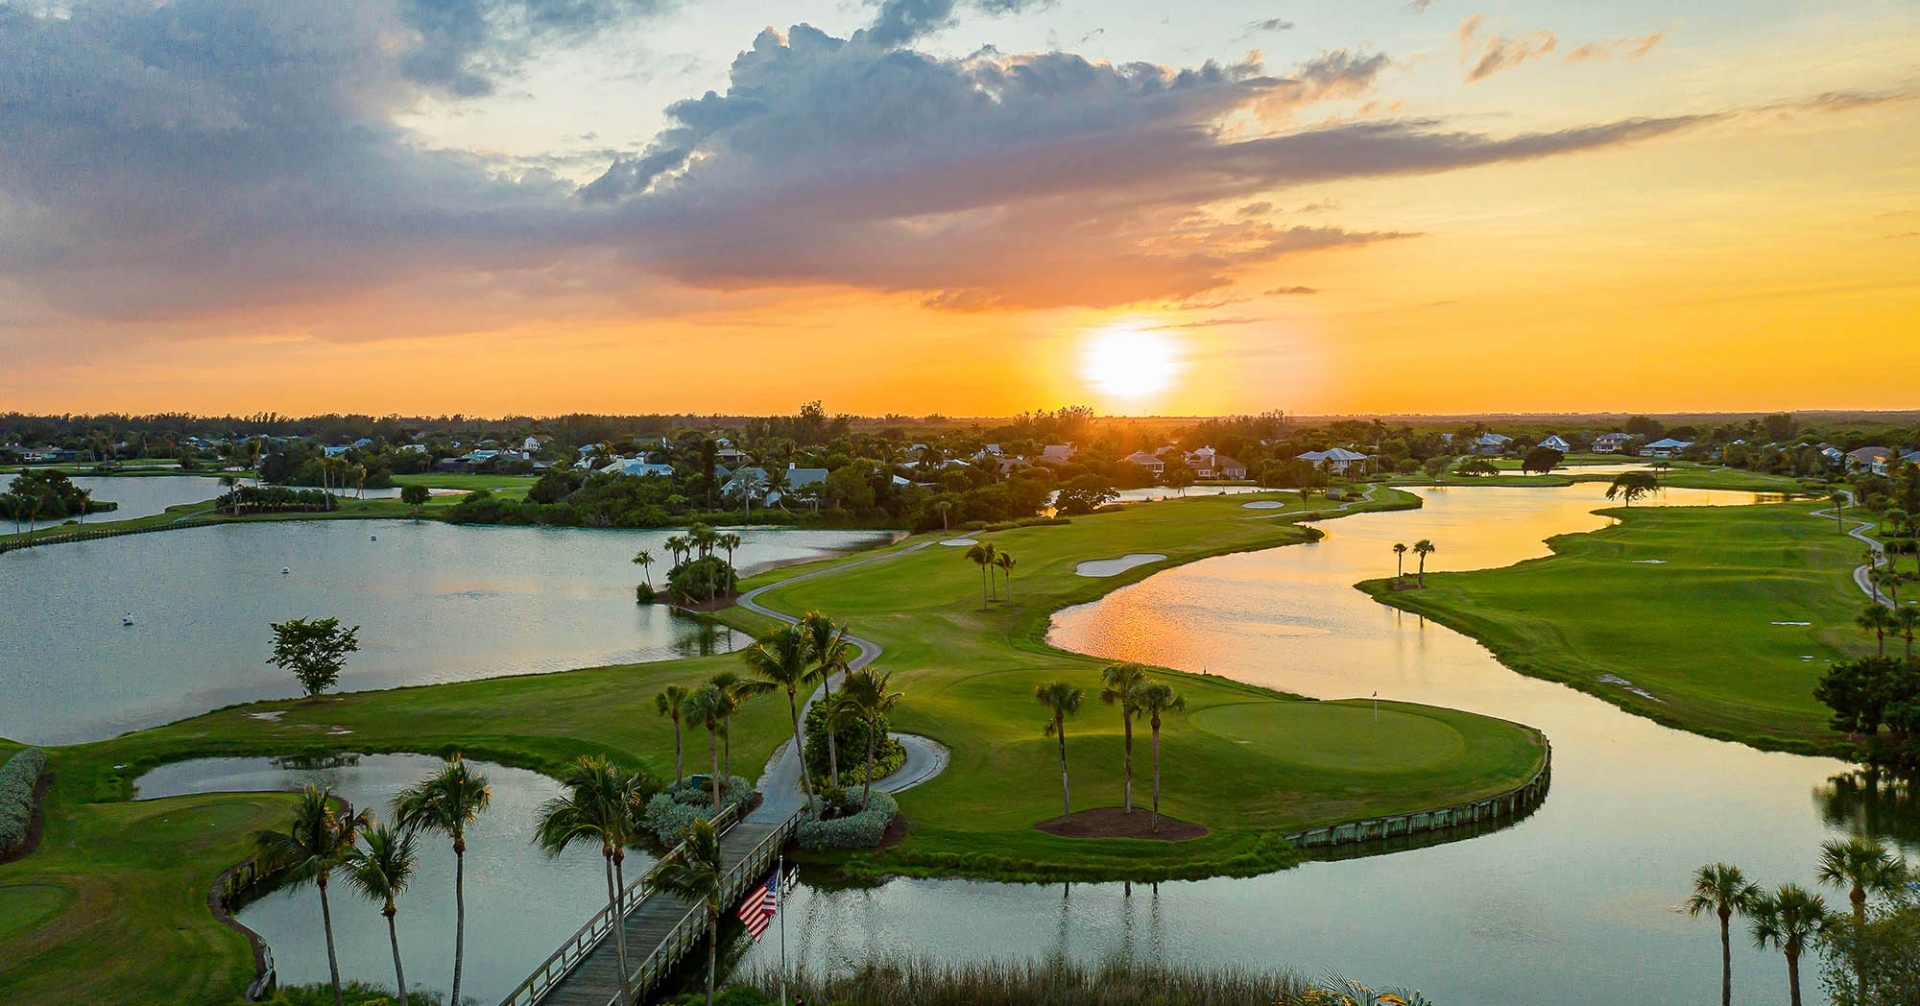 Aerial view of The Dunes Sanibel Island golf course